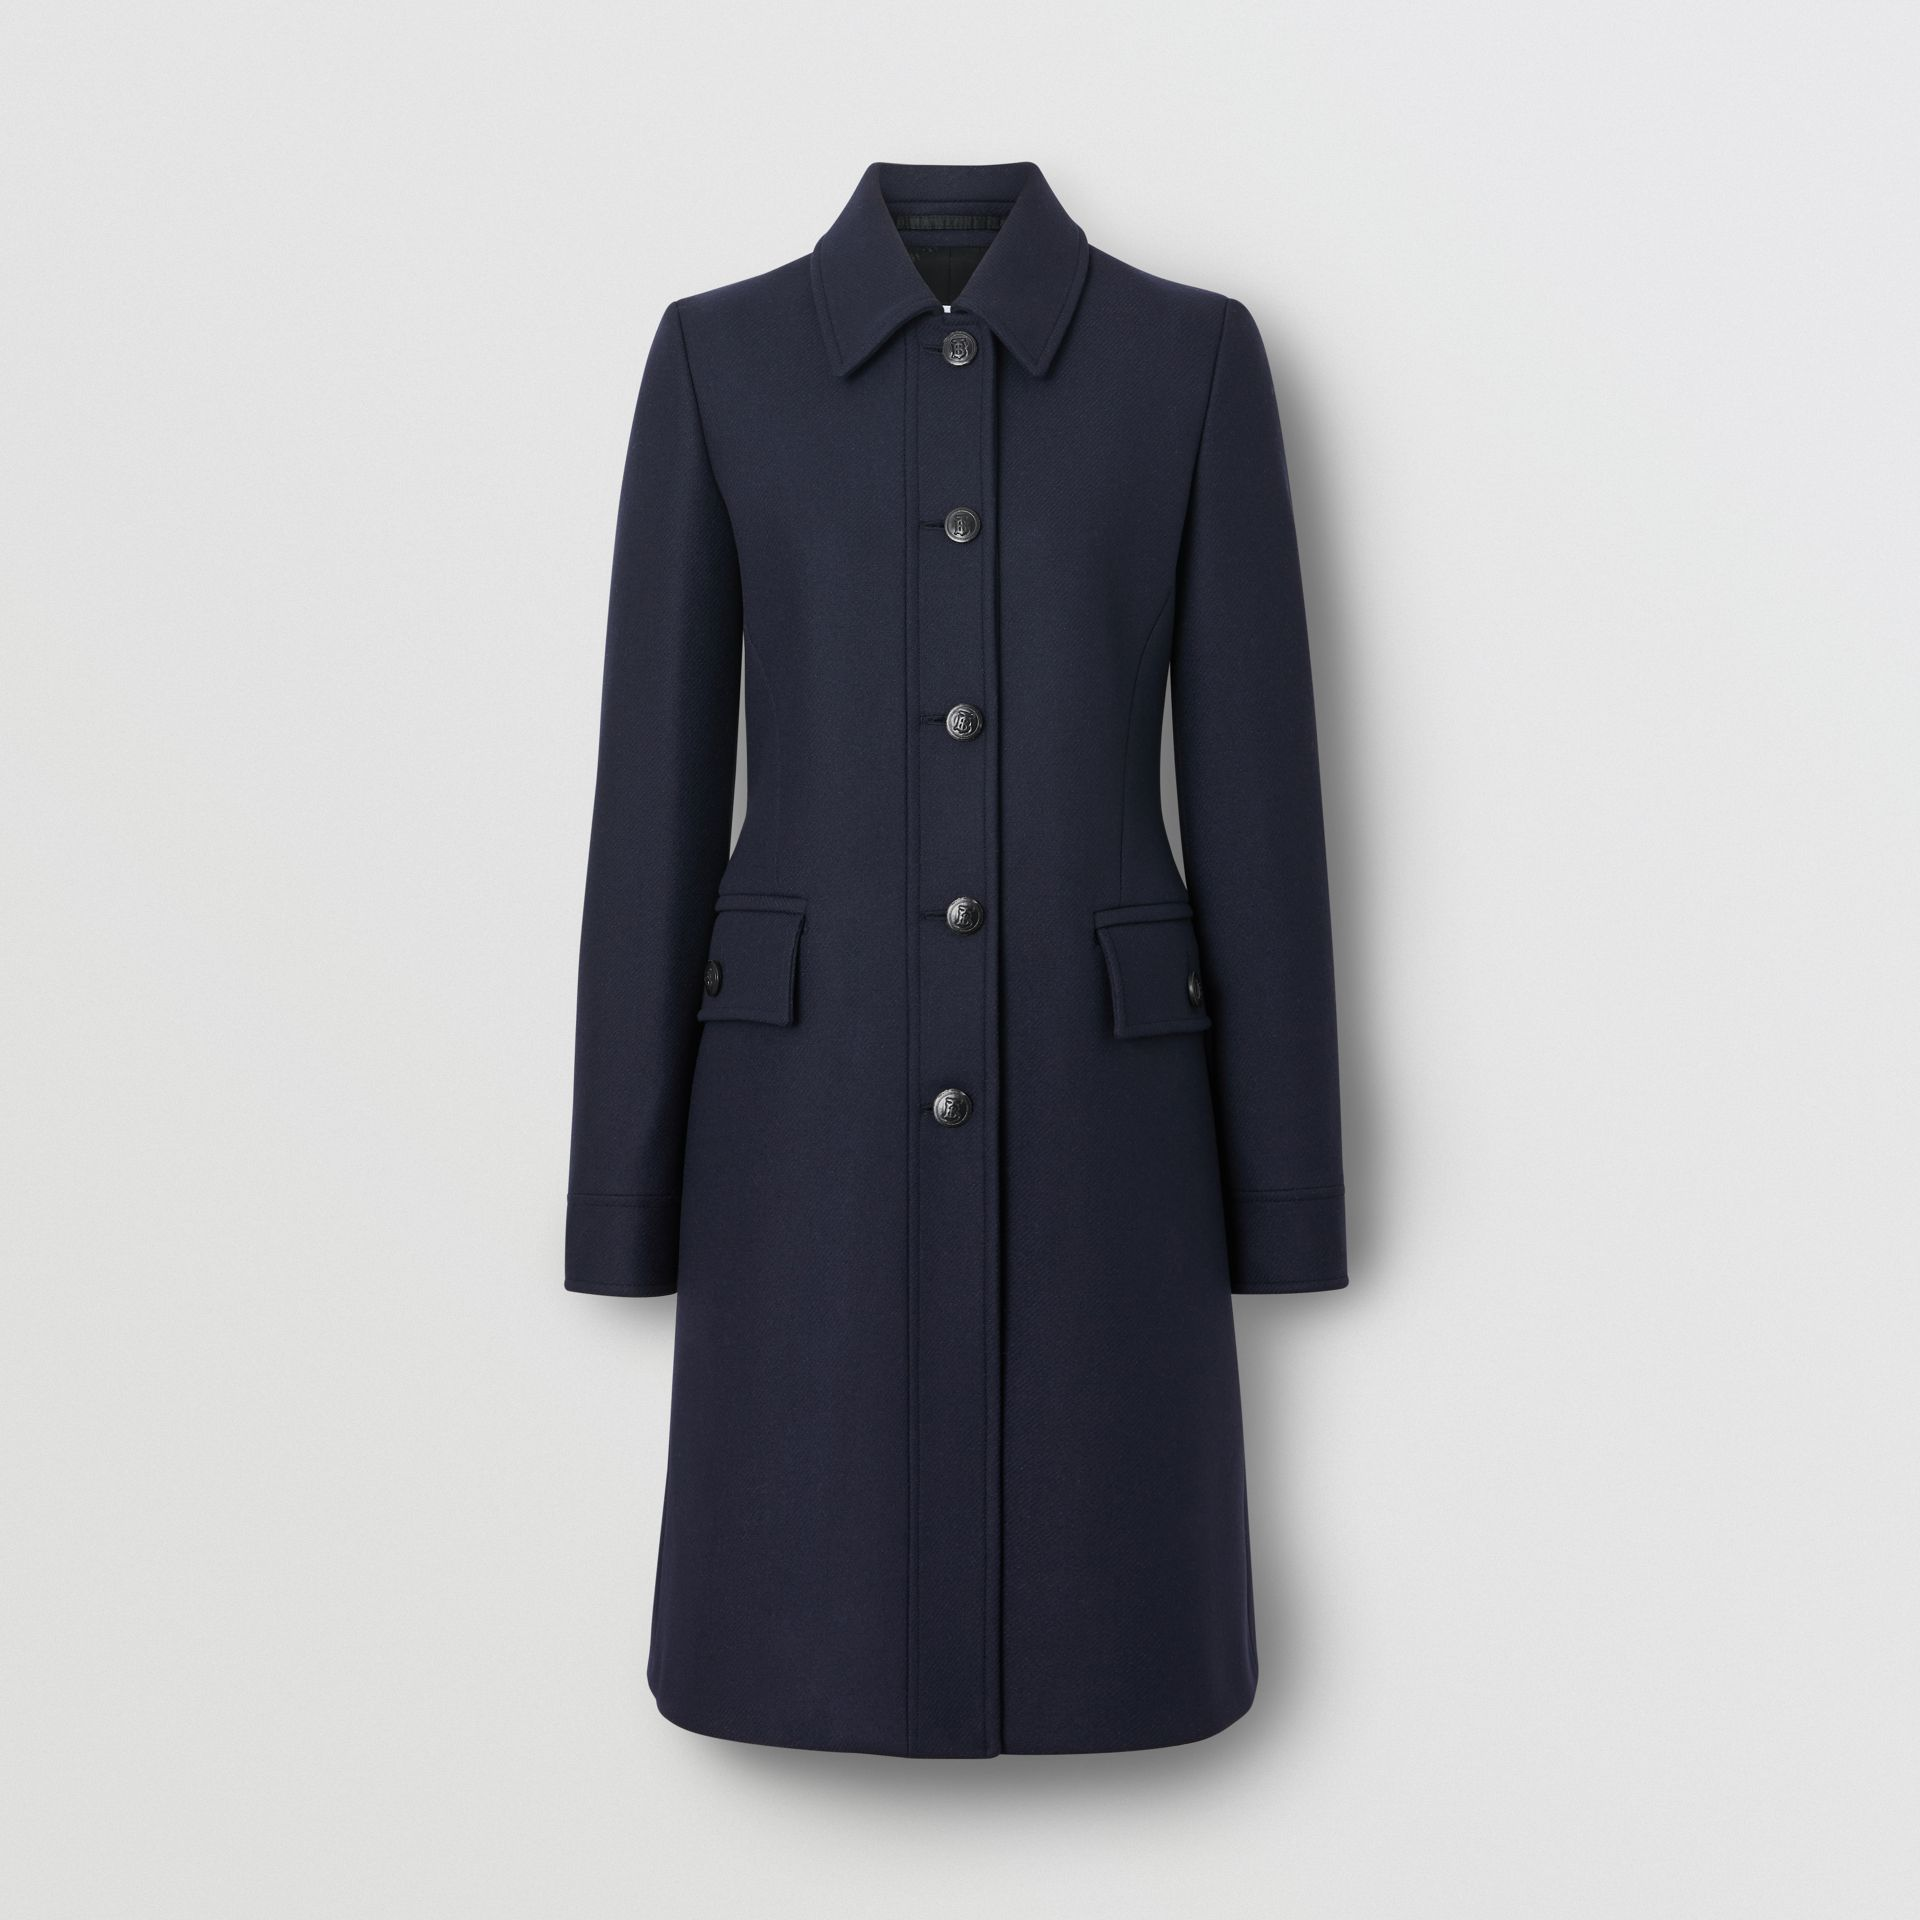 Double-faced Wool Cashmere Blend Coat in Navy - Women | Burberry - gallery image 3